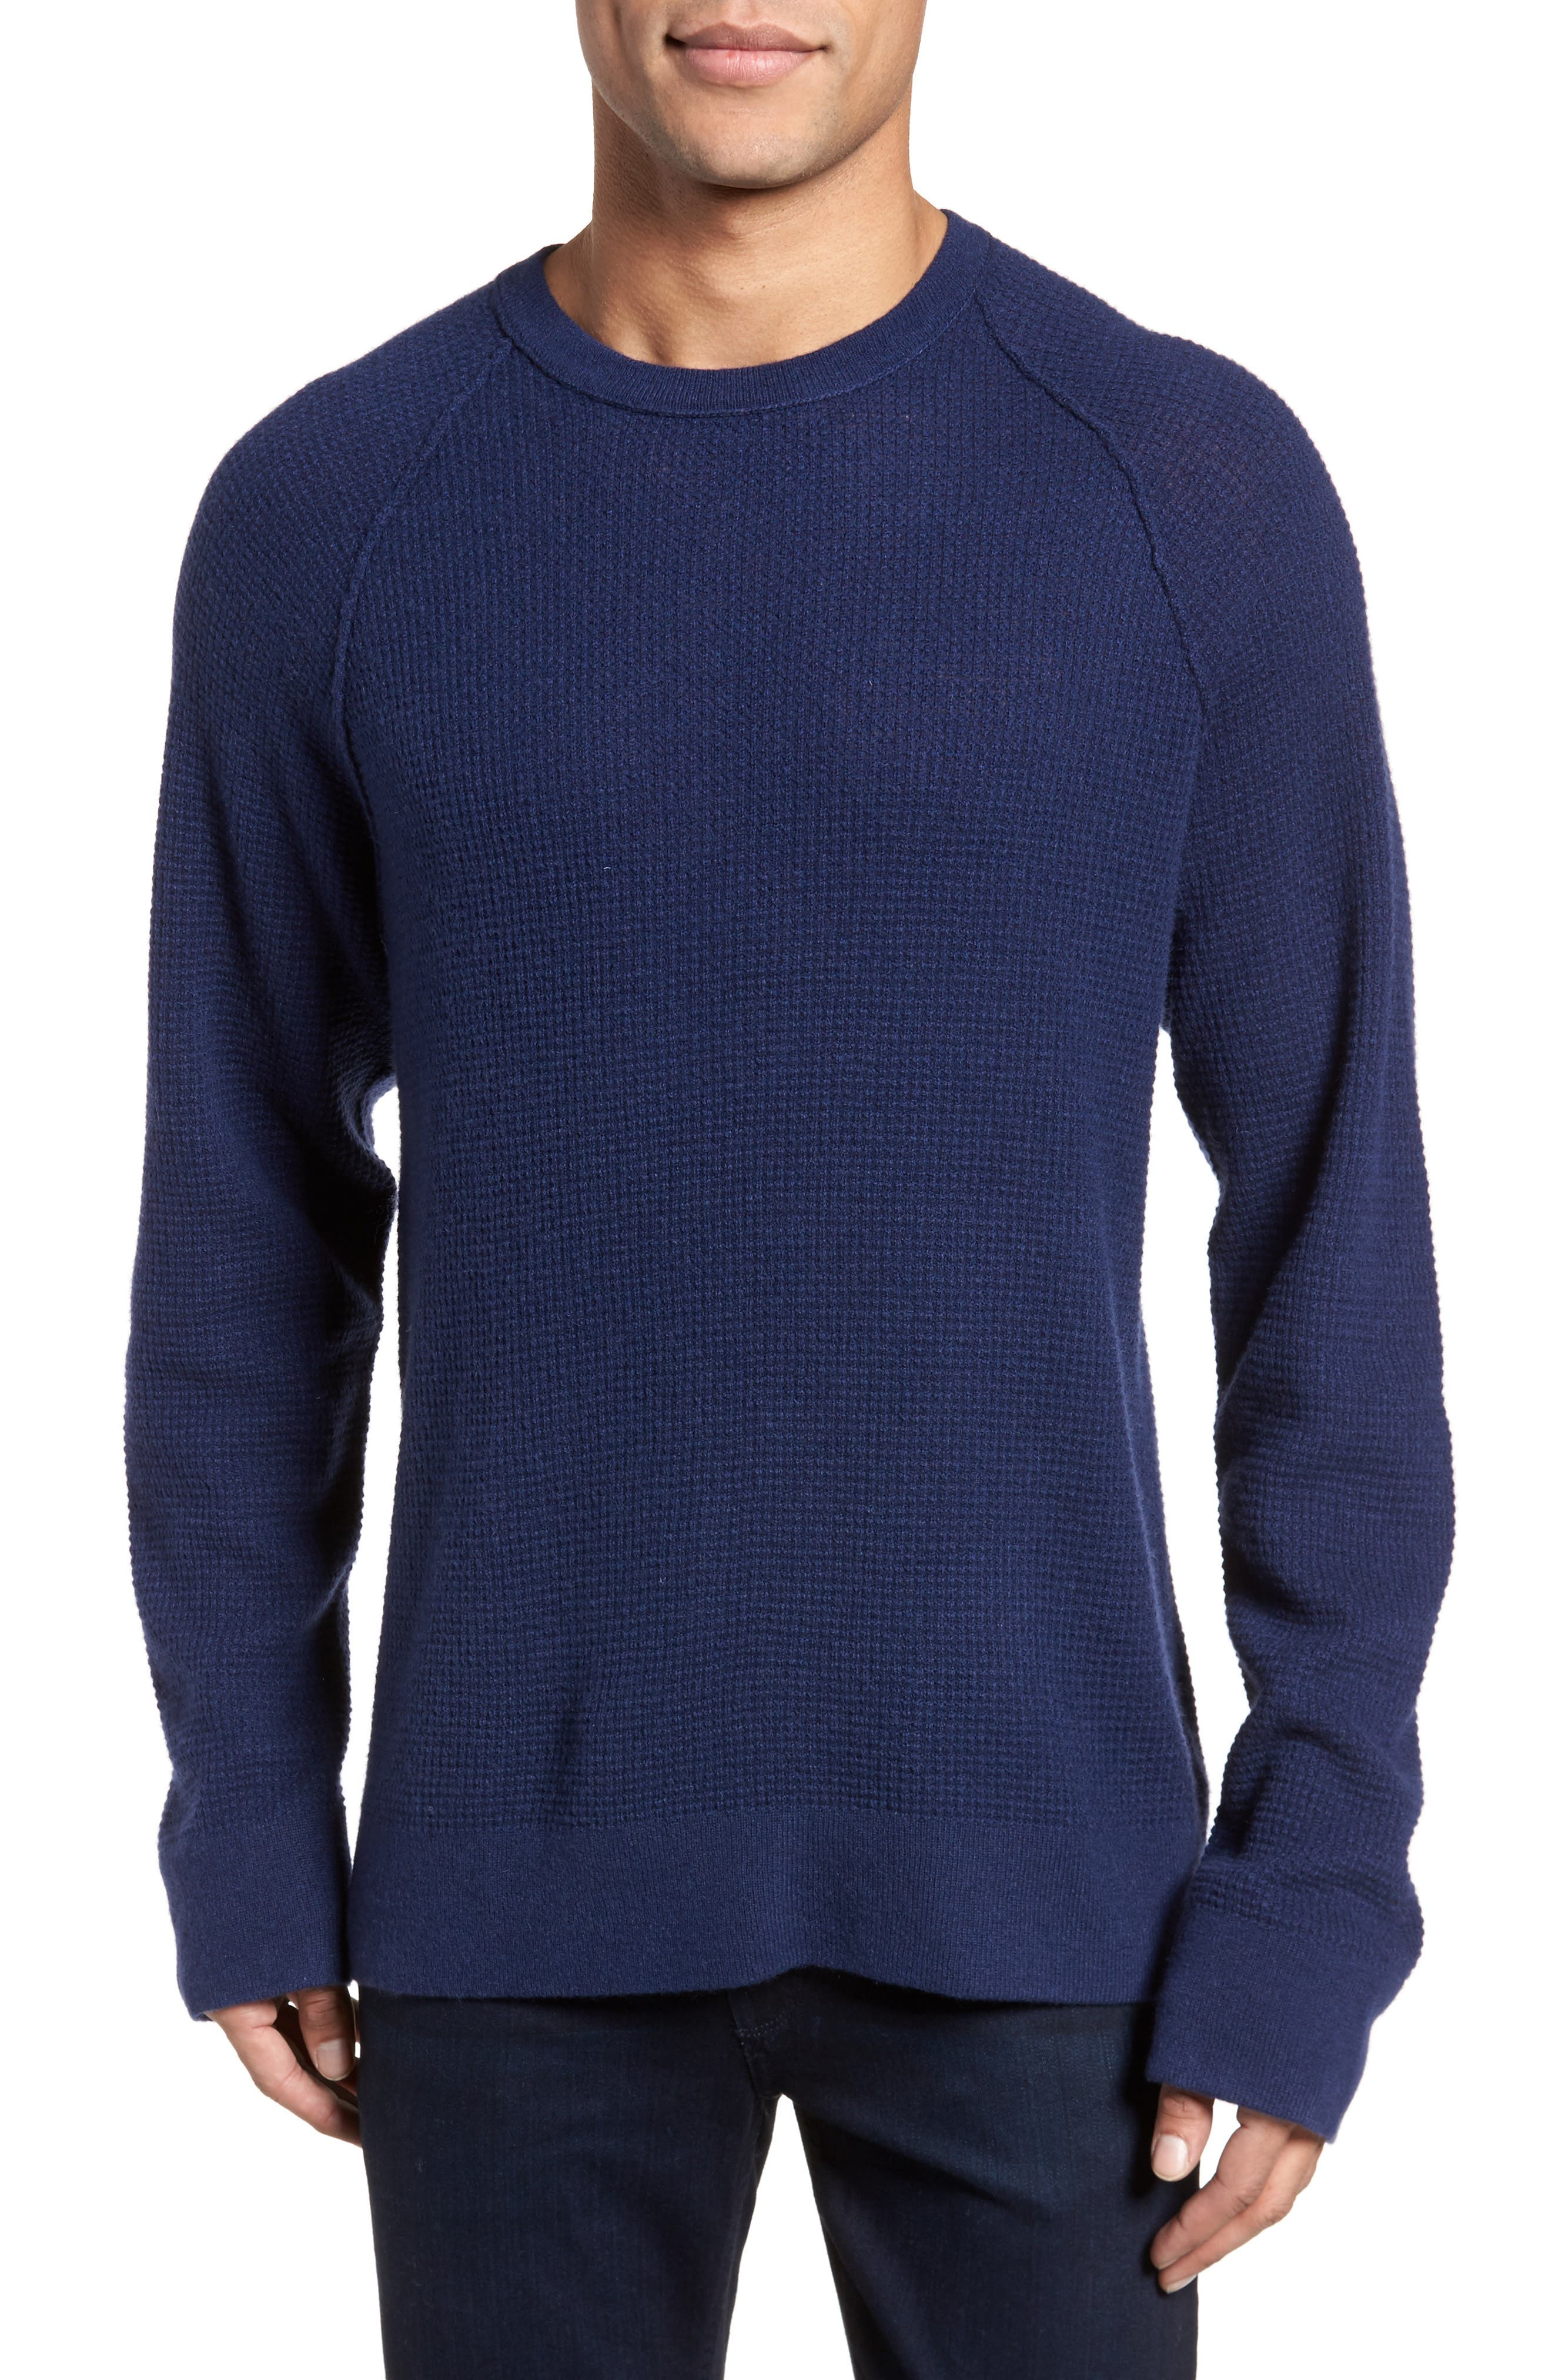 Thermal Cashmere Sweater,                             Main thumbnail 1, color,                             Blue